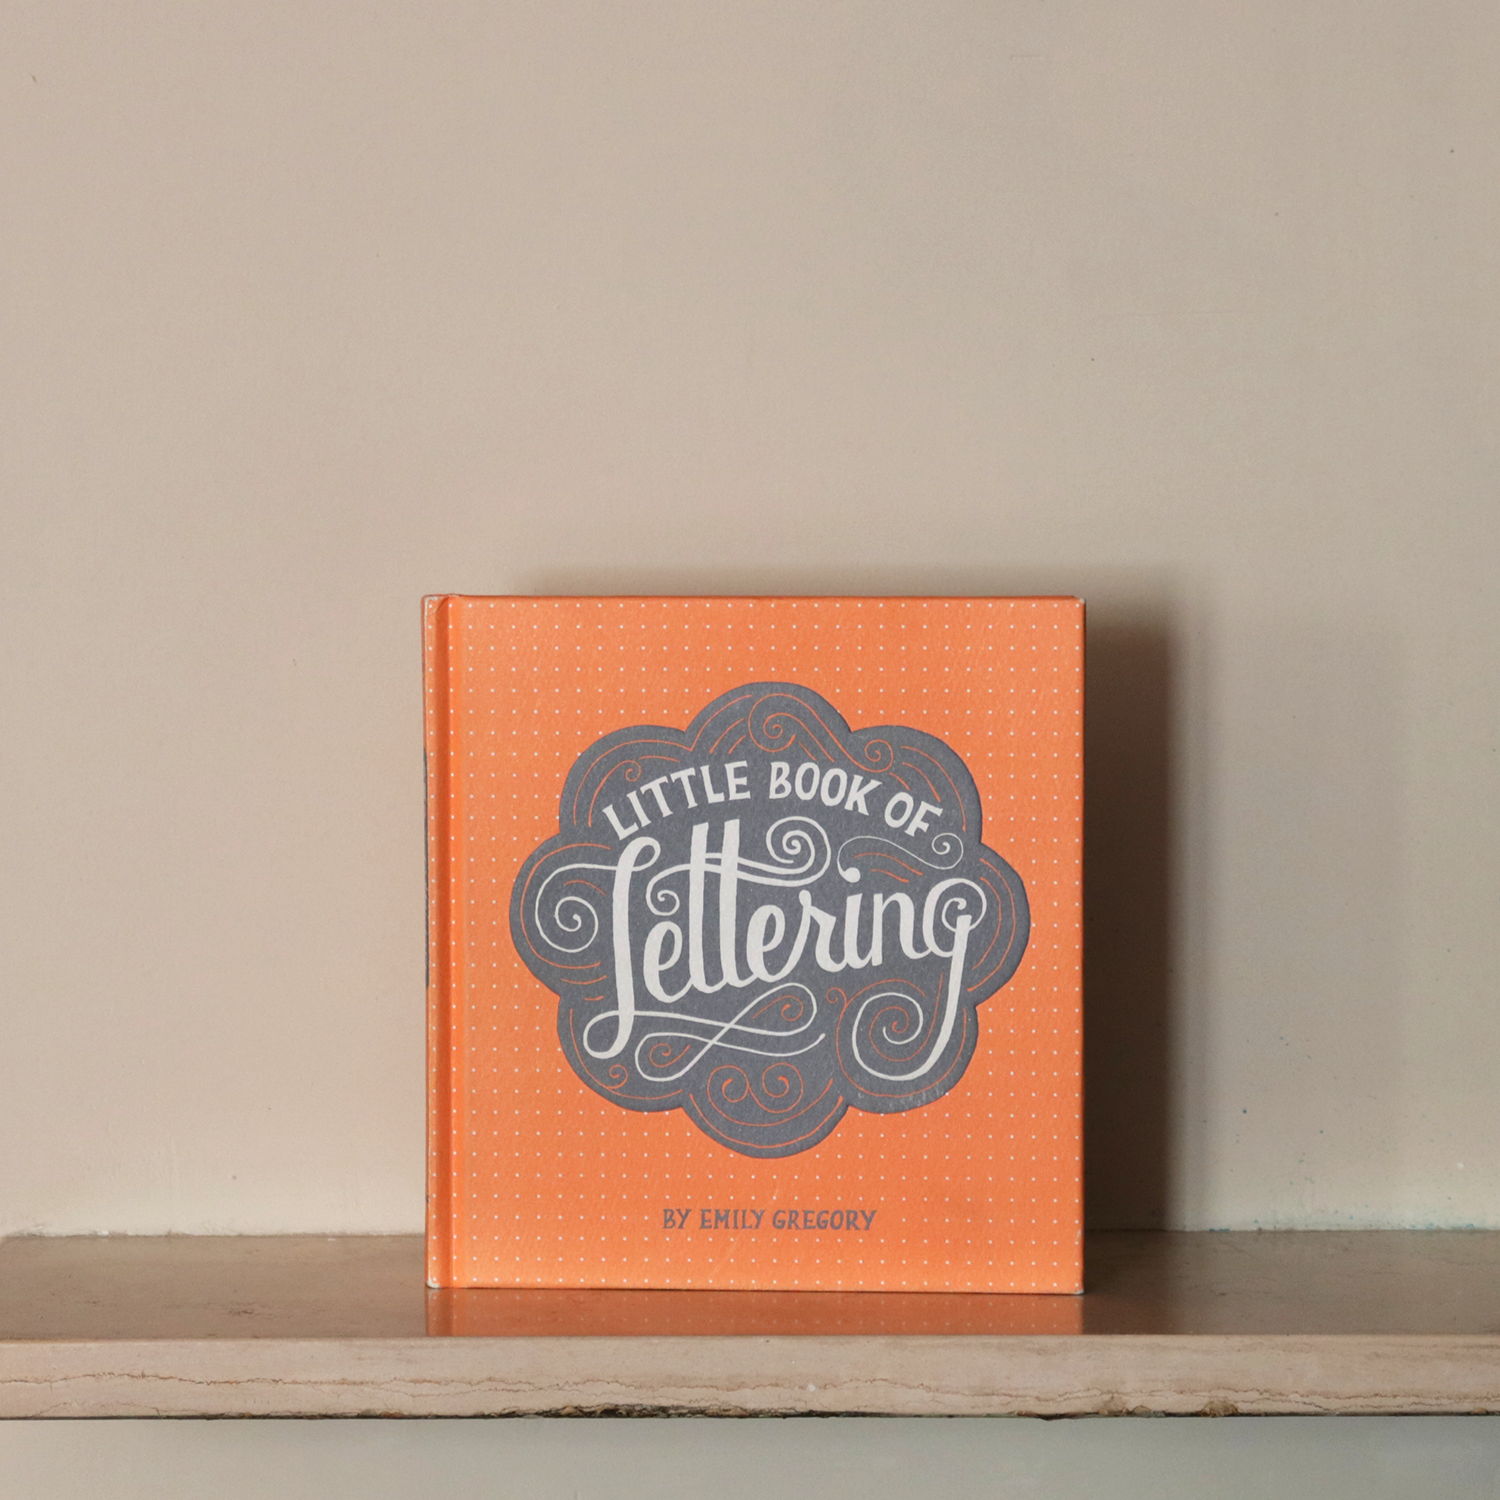 The little book of lettering